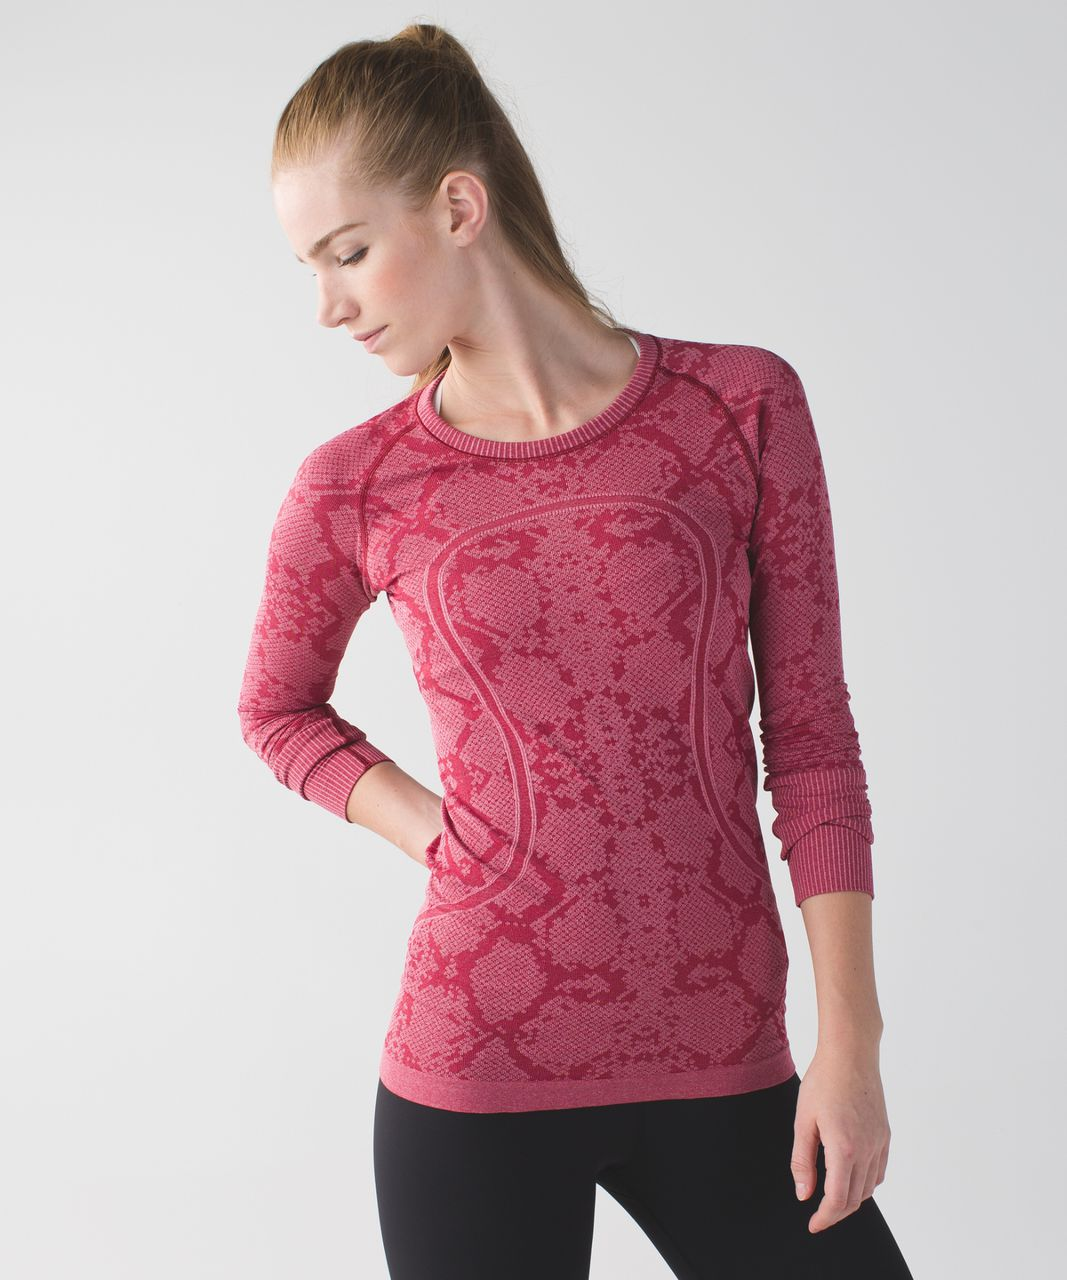 Lululemon Swiftly Tech Long Sleeve Crew - Heathered Cranberry